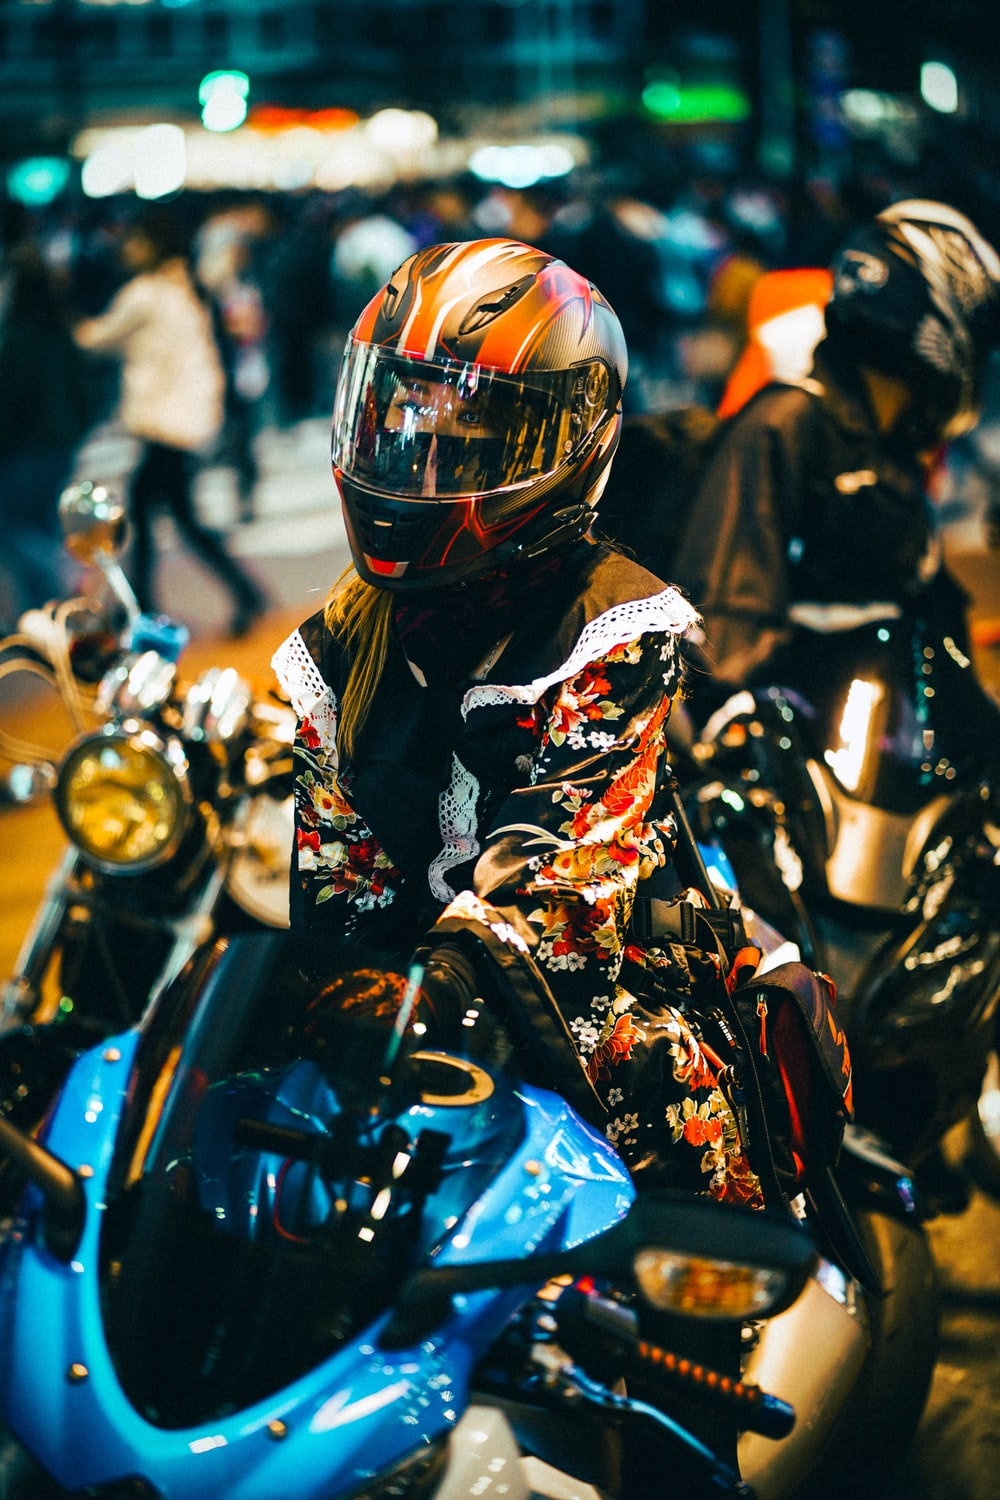 man in black and yellow motorcycle suit riding motorcycle